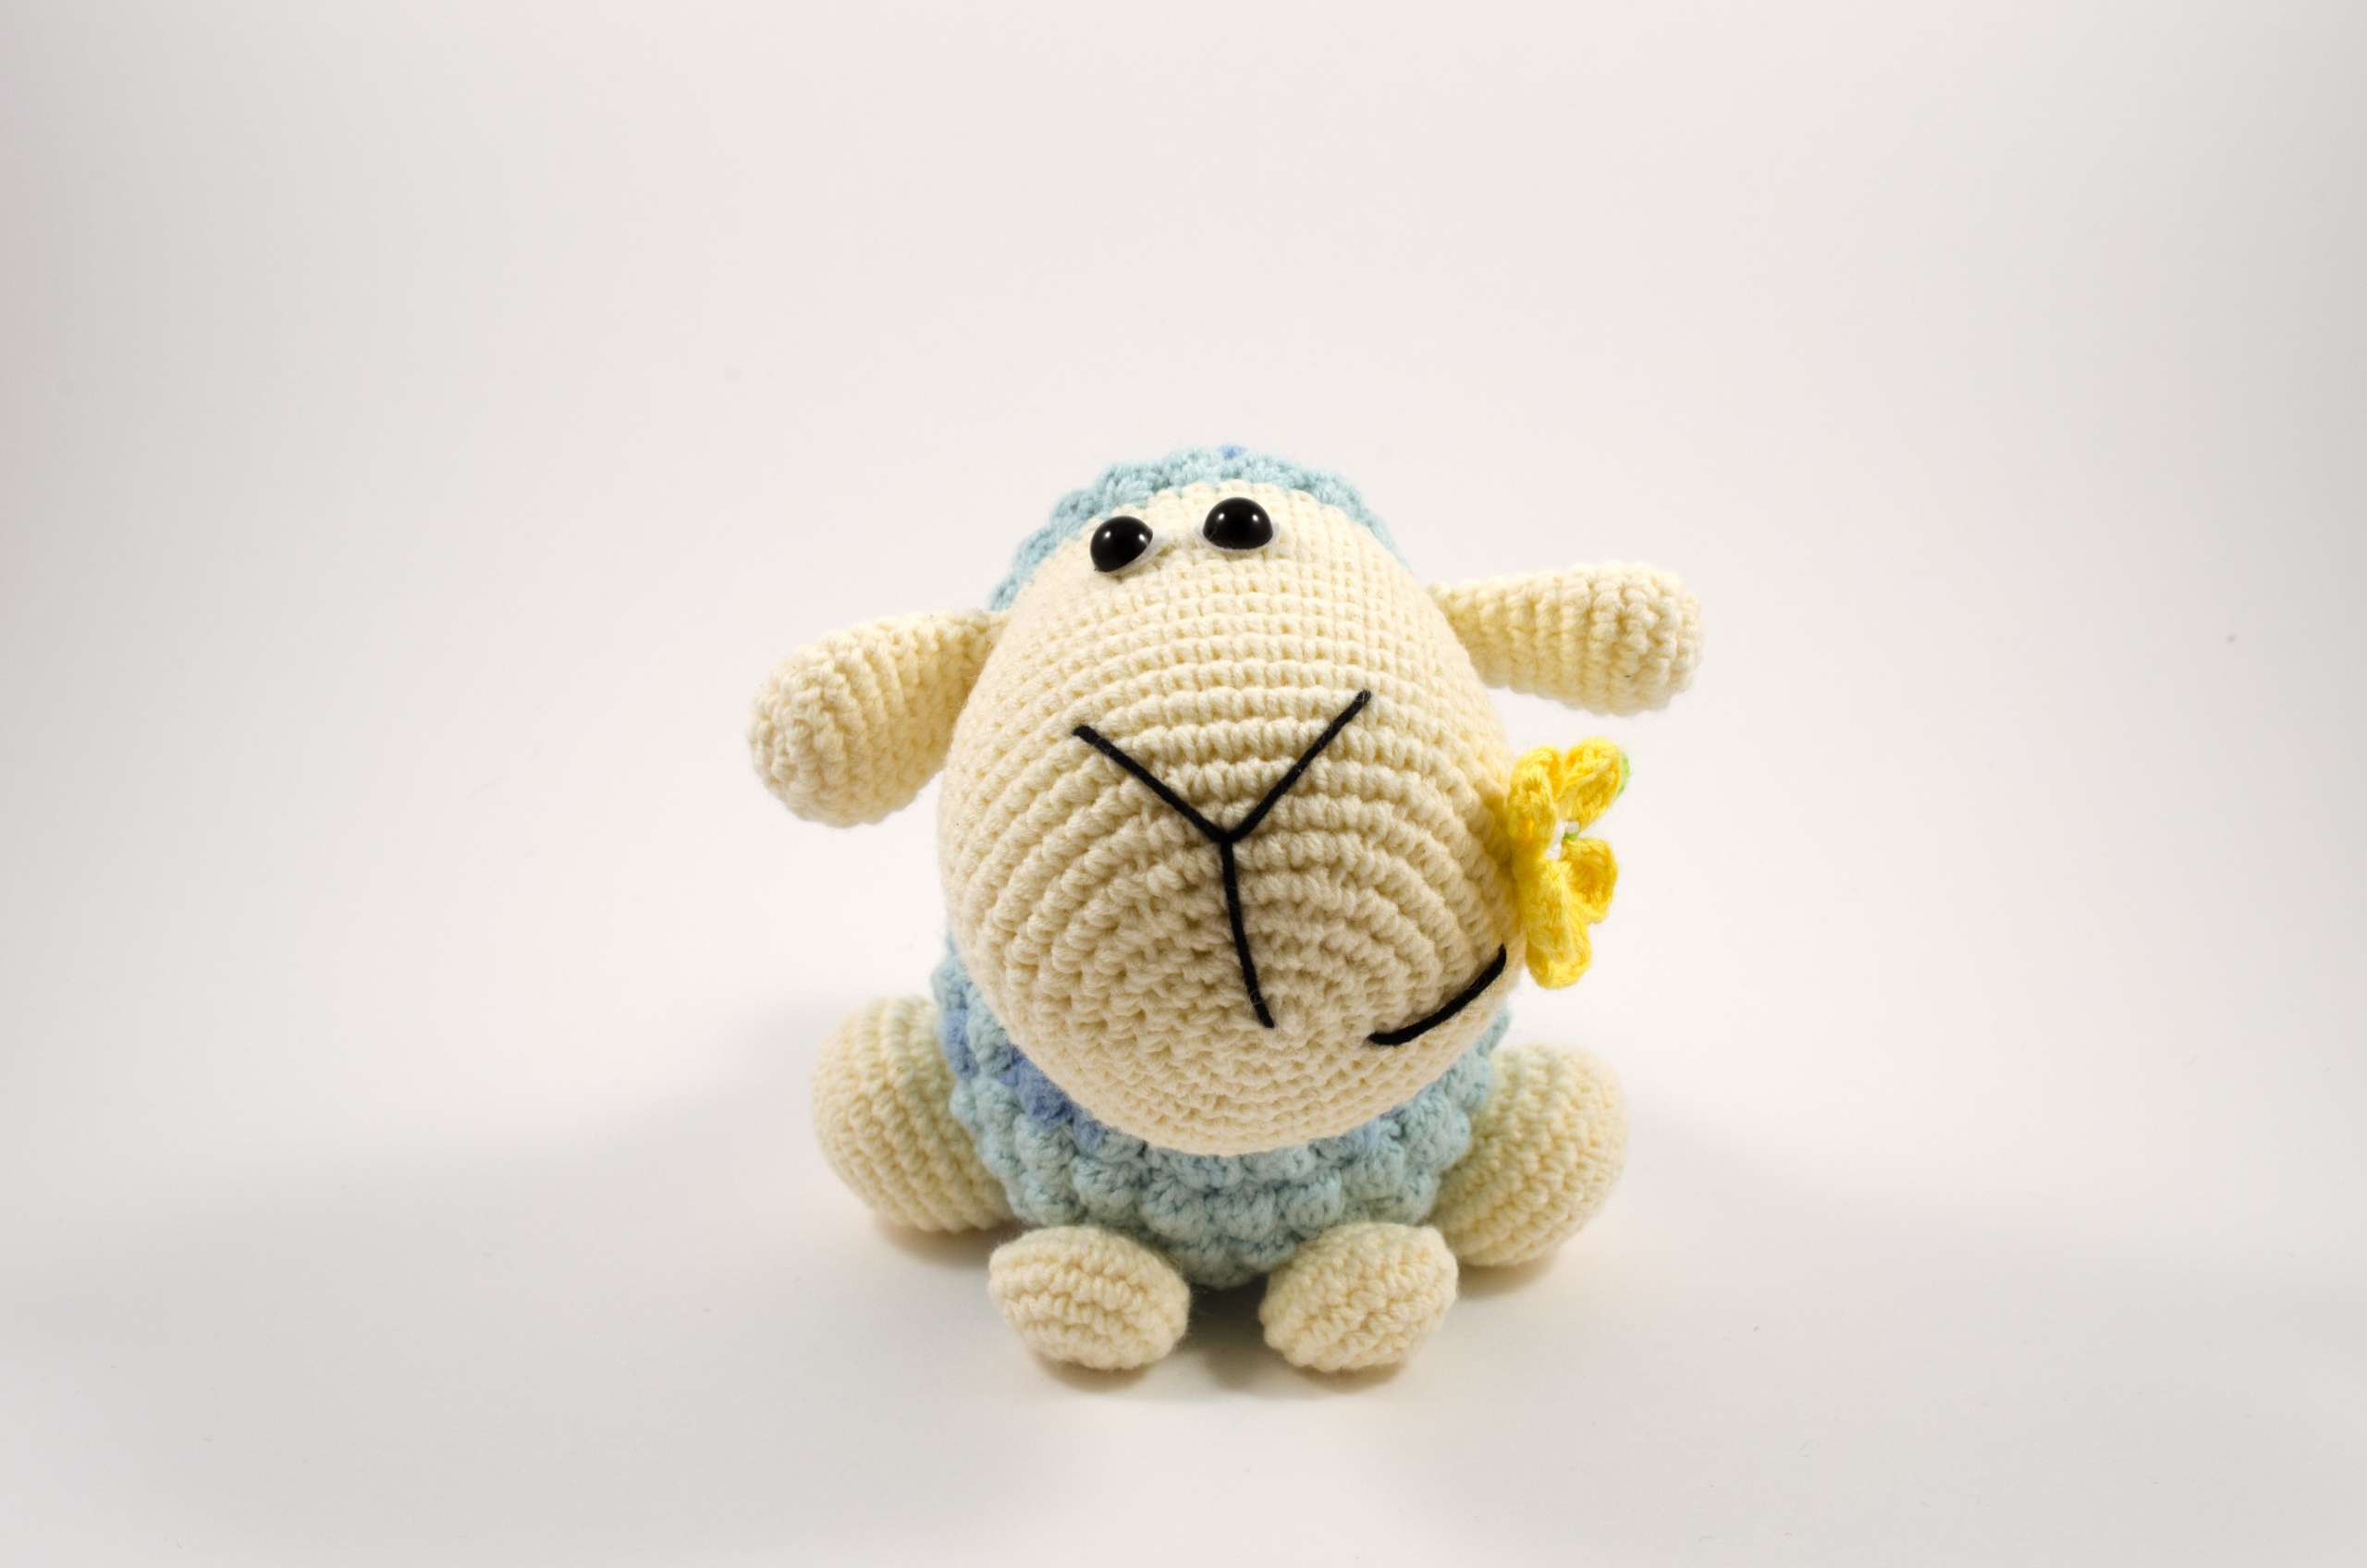 crochet sheep front view